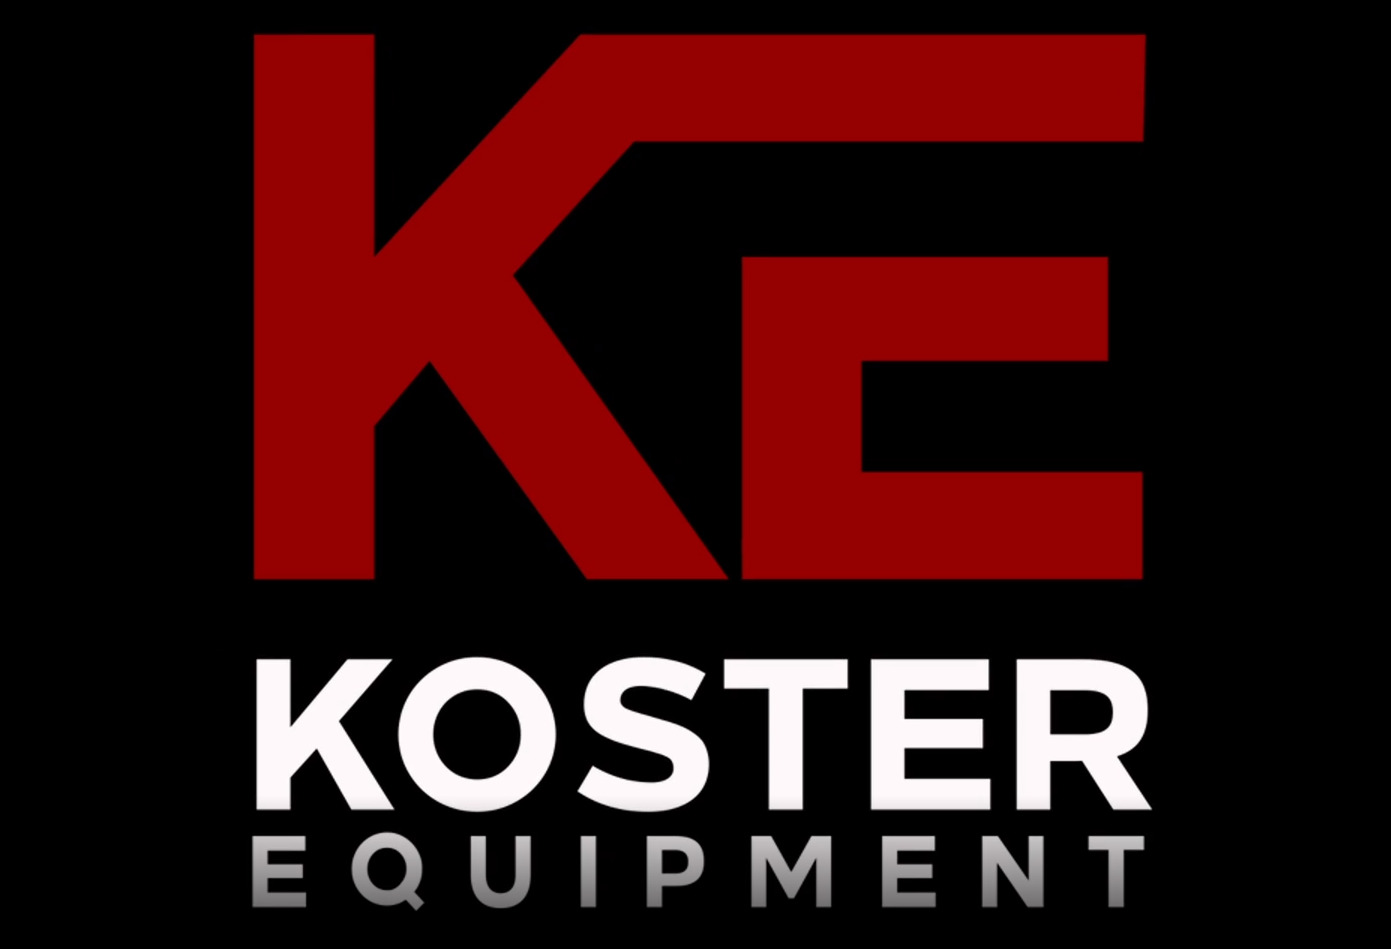 Koster Equipment Sales & Rental